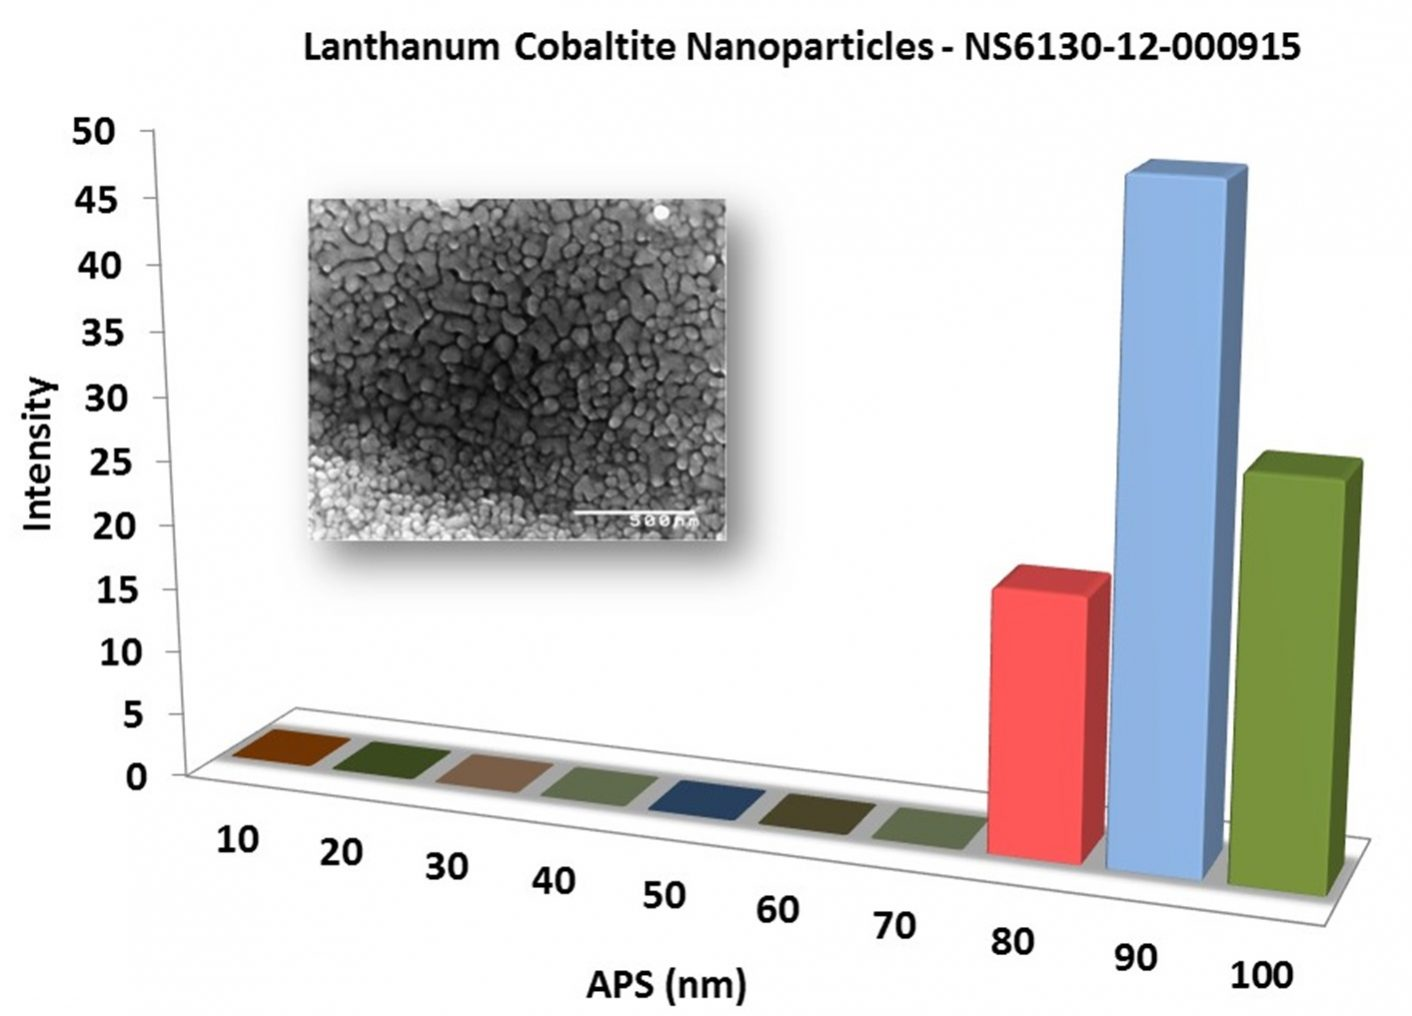 Particles Size Analysis - LaCoO3 Nanopowder